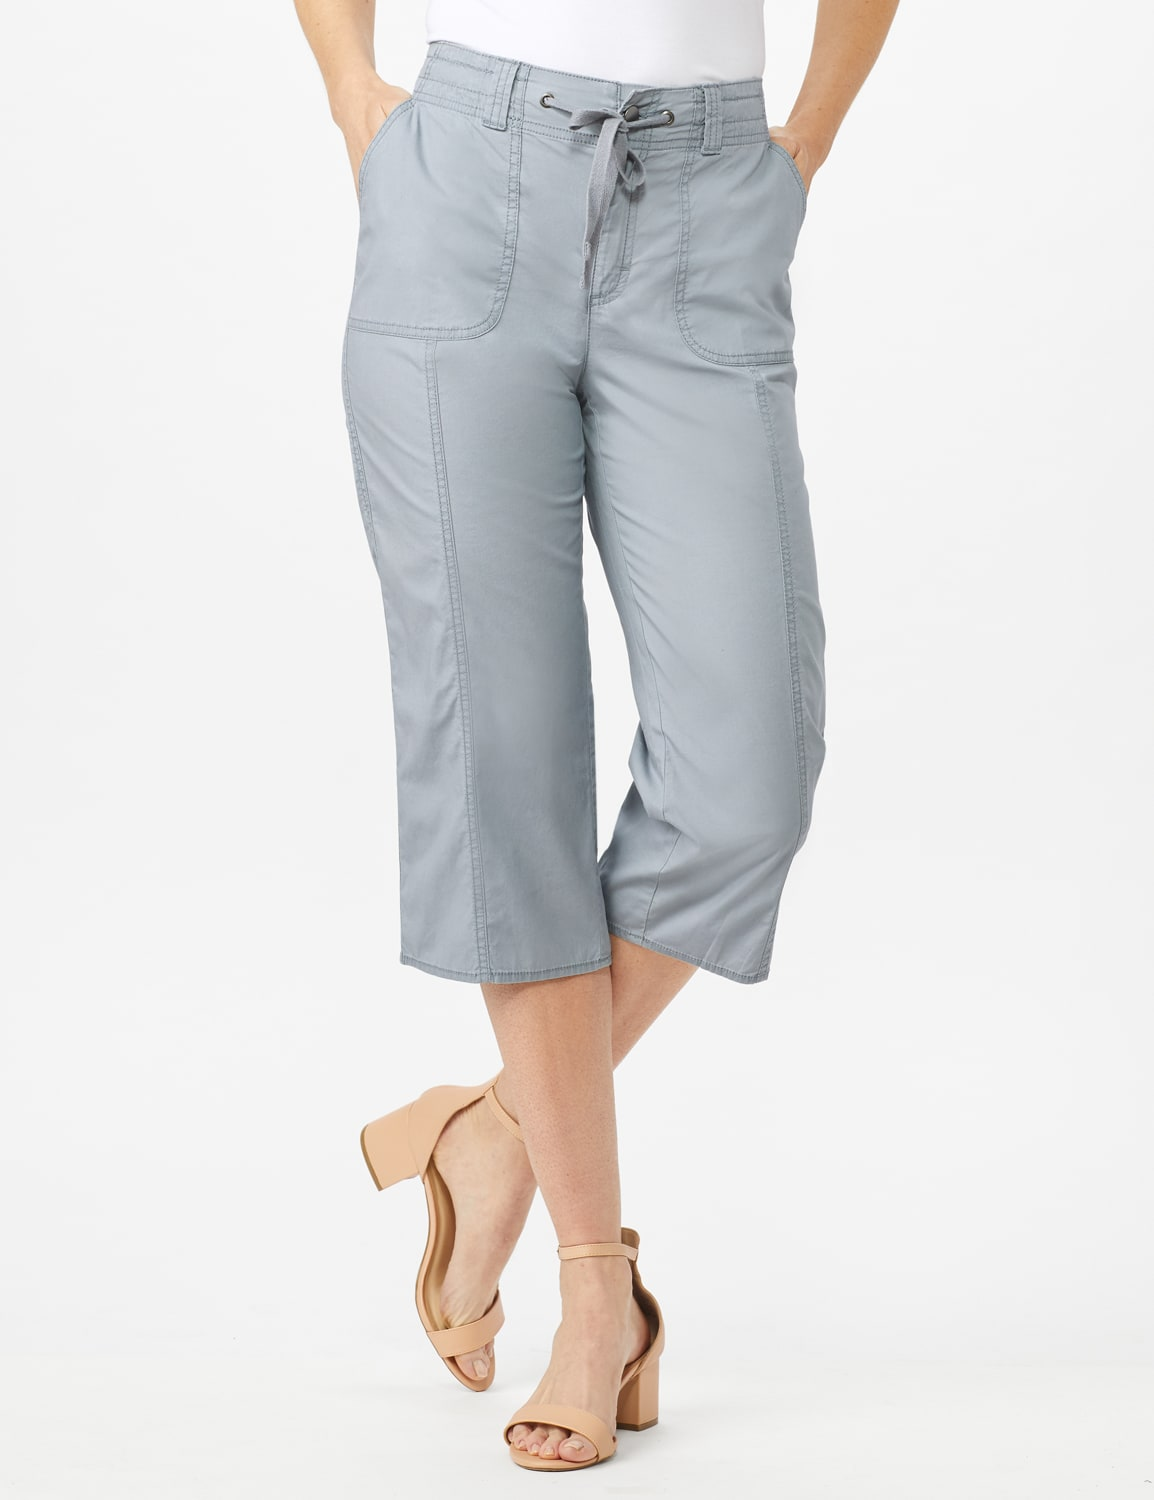 Utility Capri Pants with Drawstring Waist - Shy Grey - Front